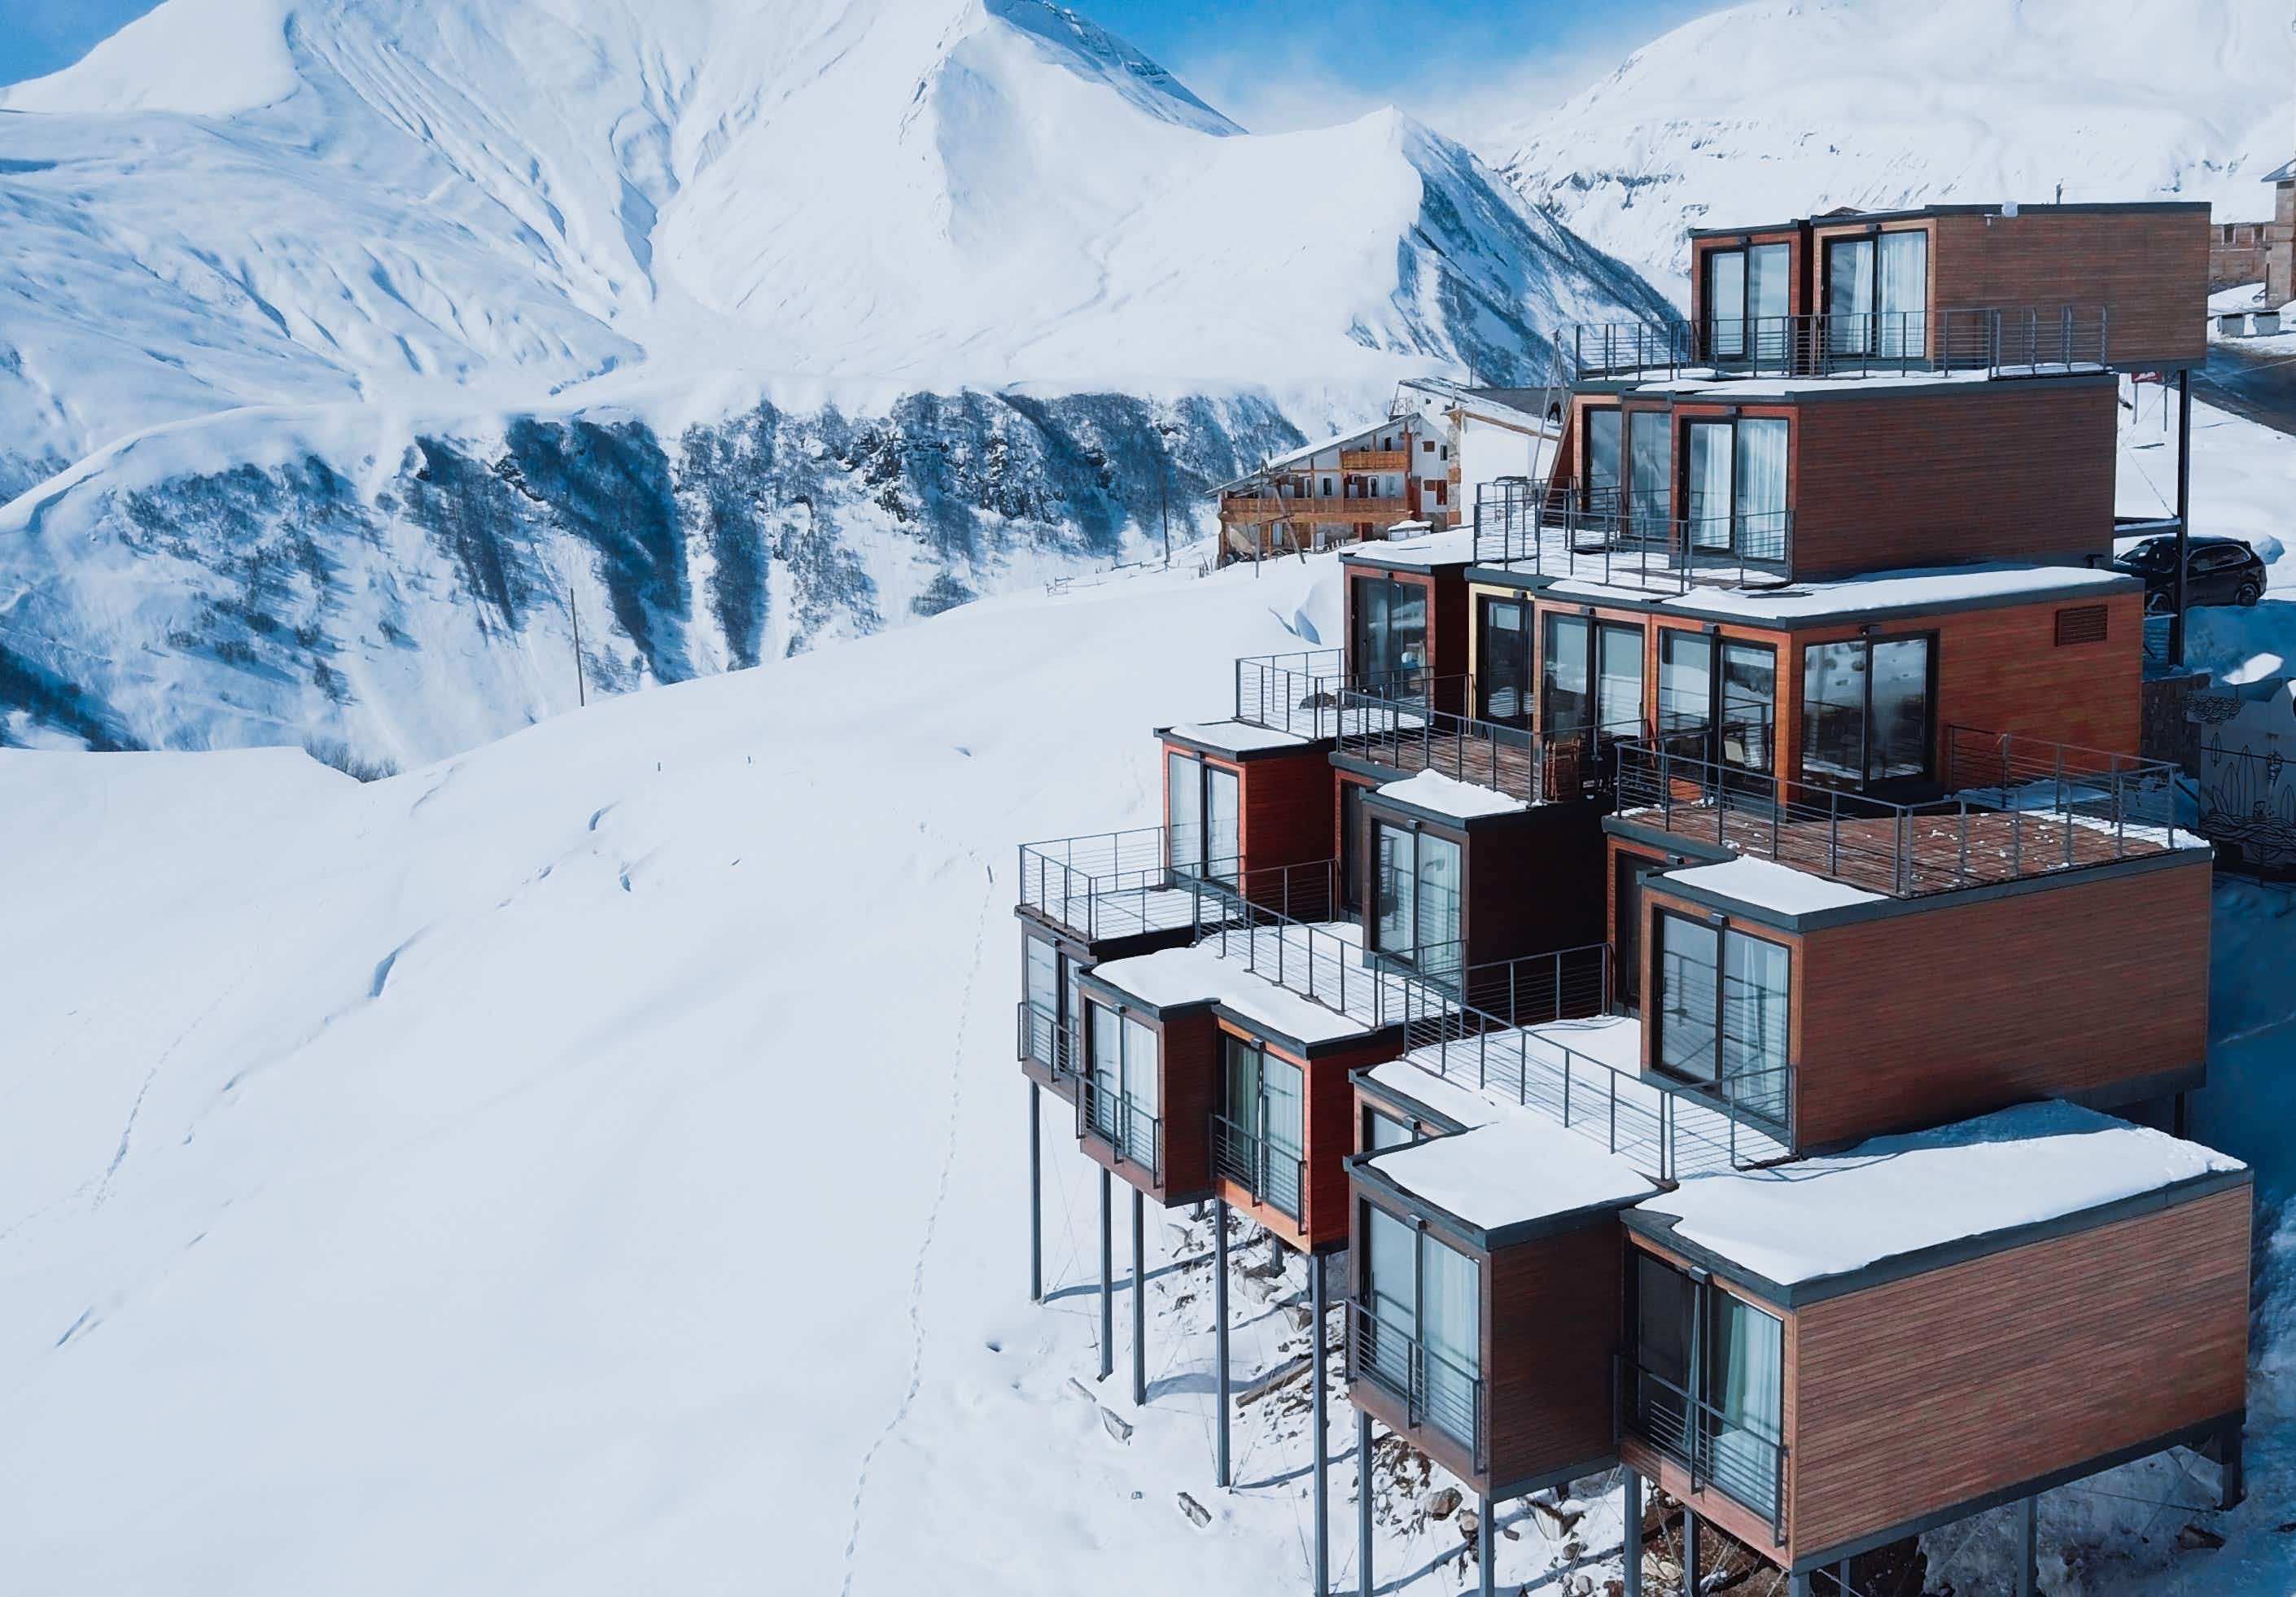 The ski resort made almost entirely of repurposed shipping containers